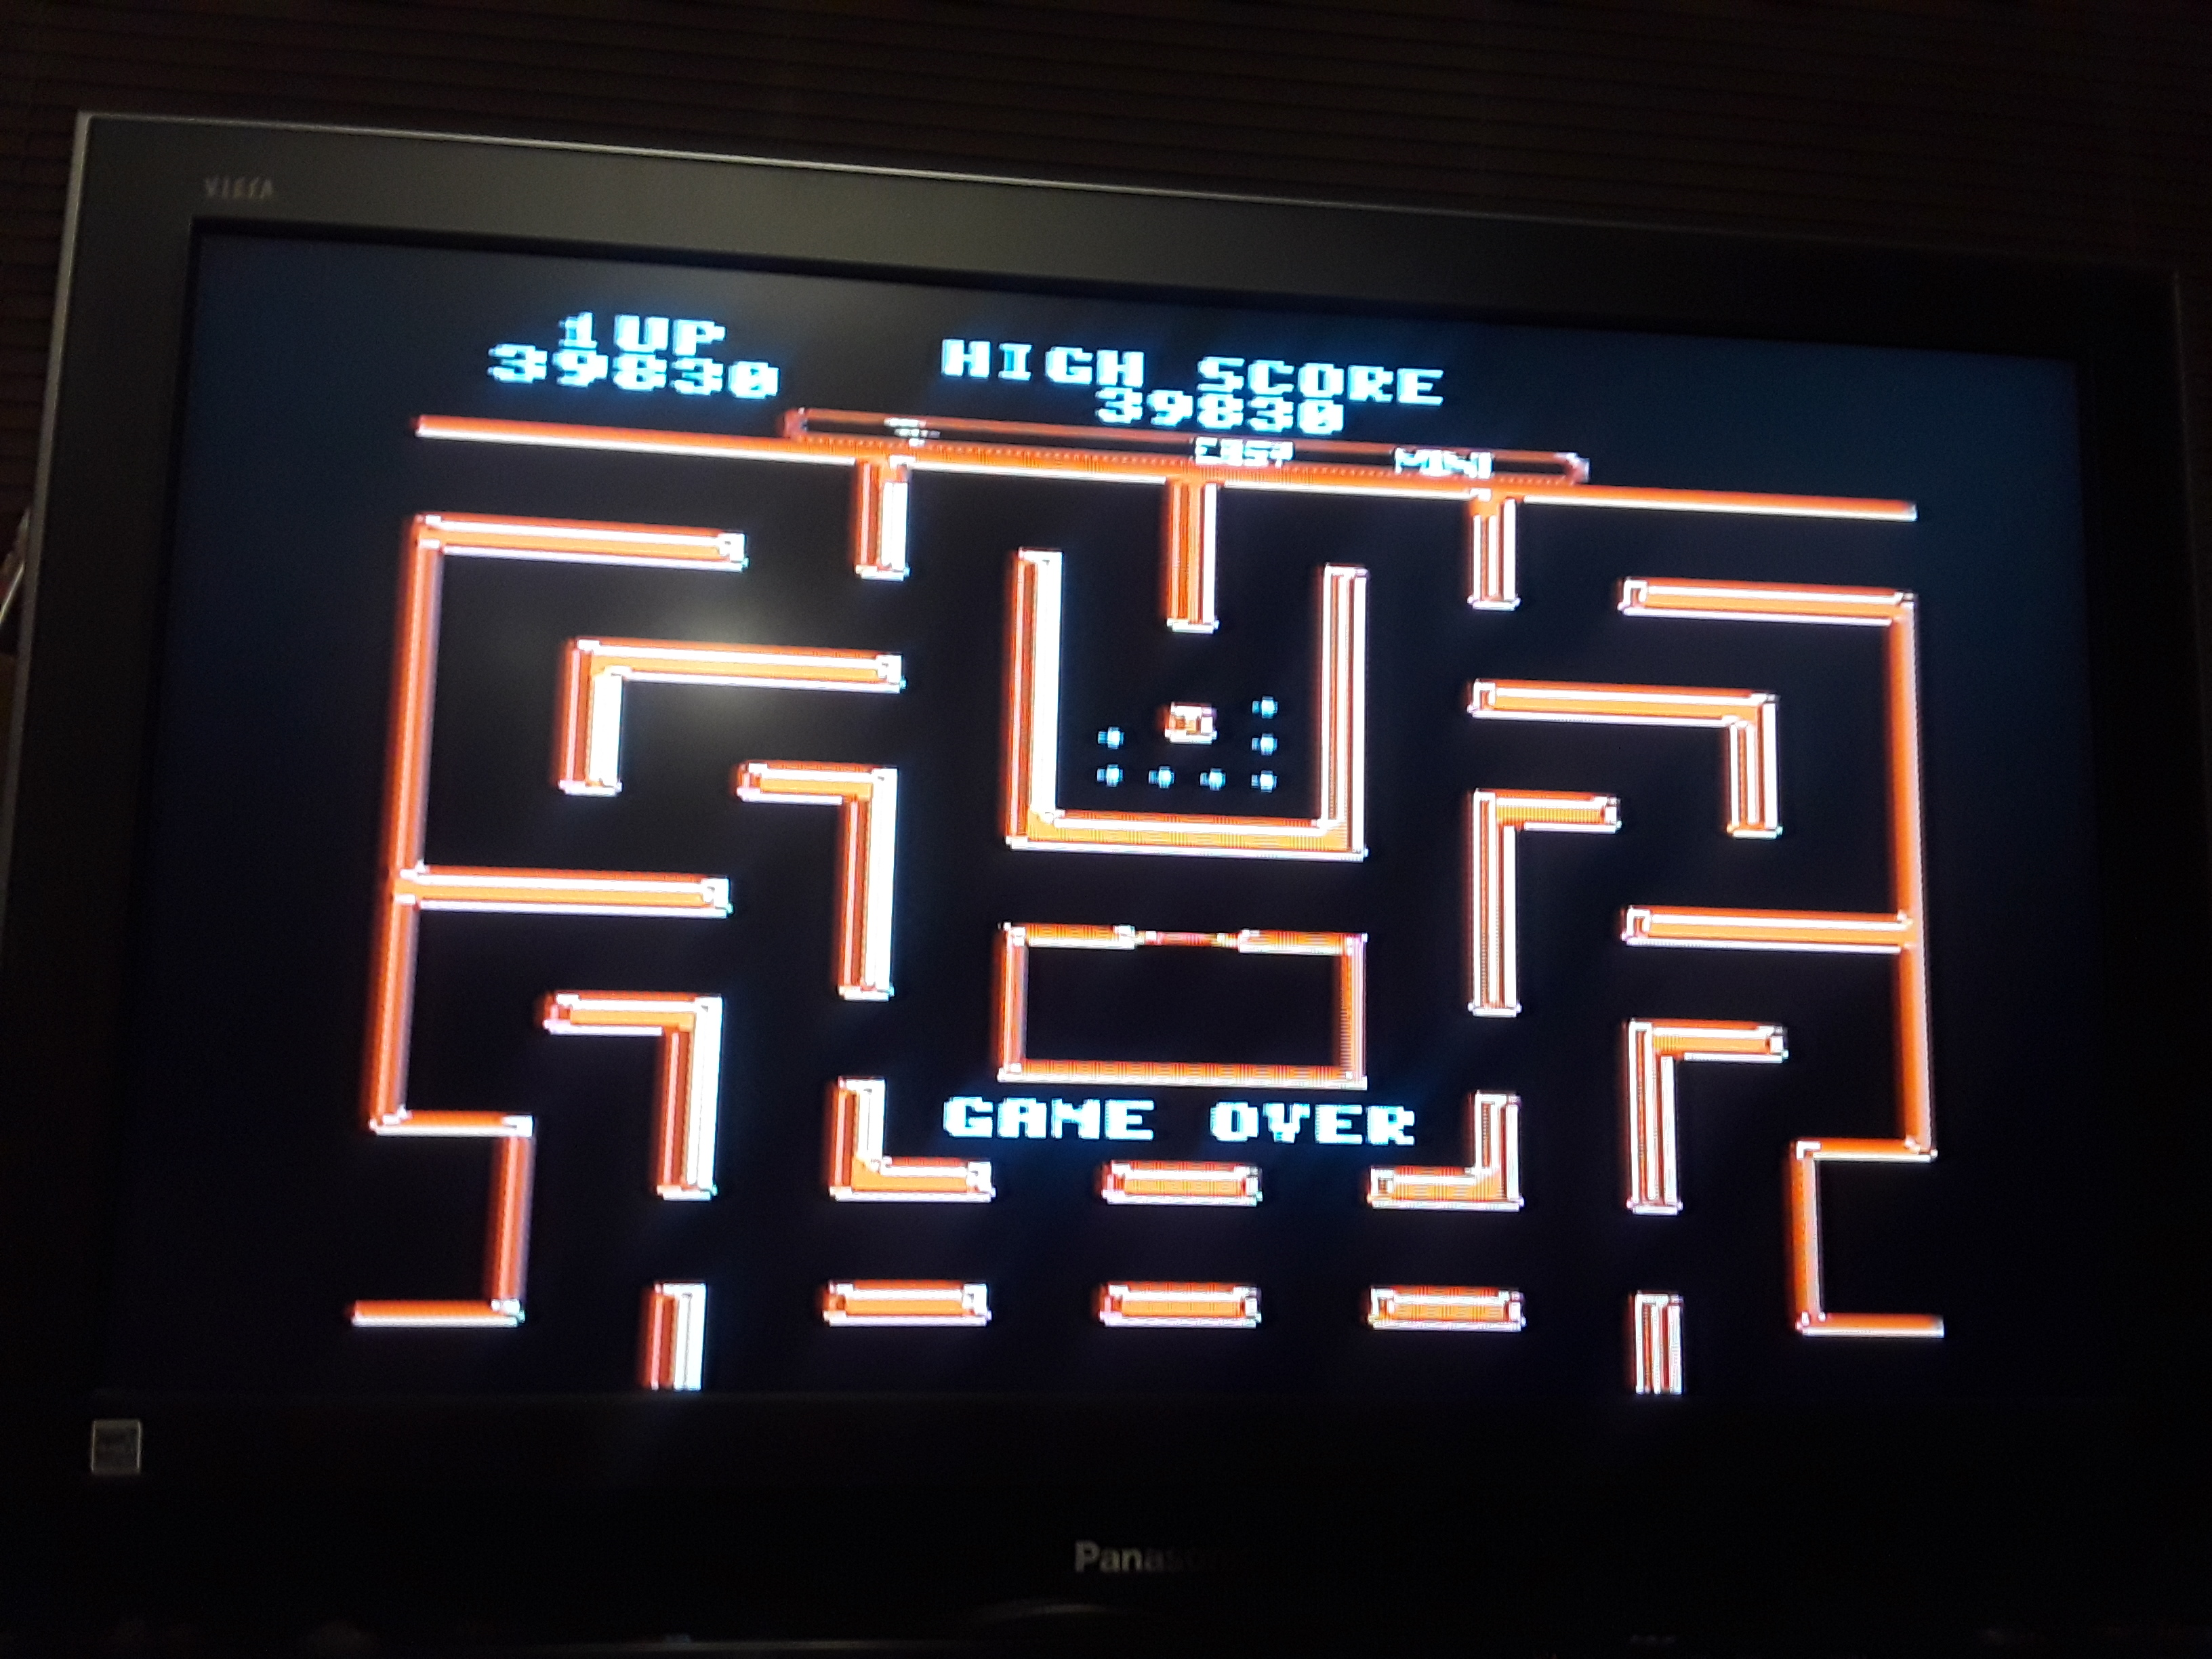 Ms. Pac-Man 39,830 points